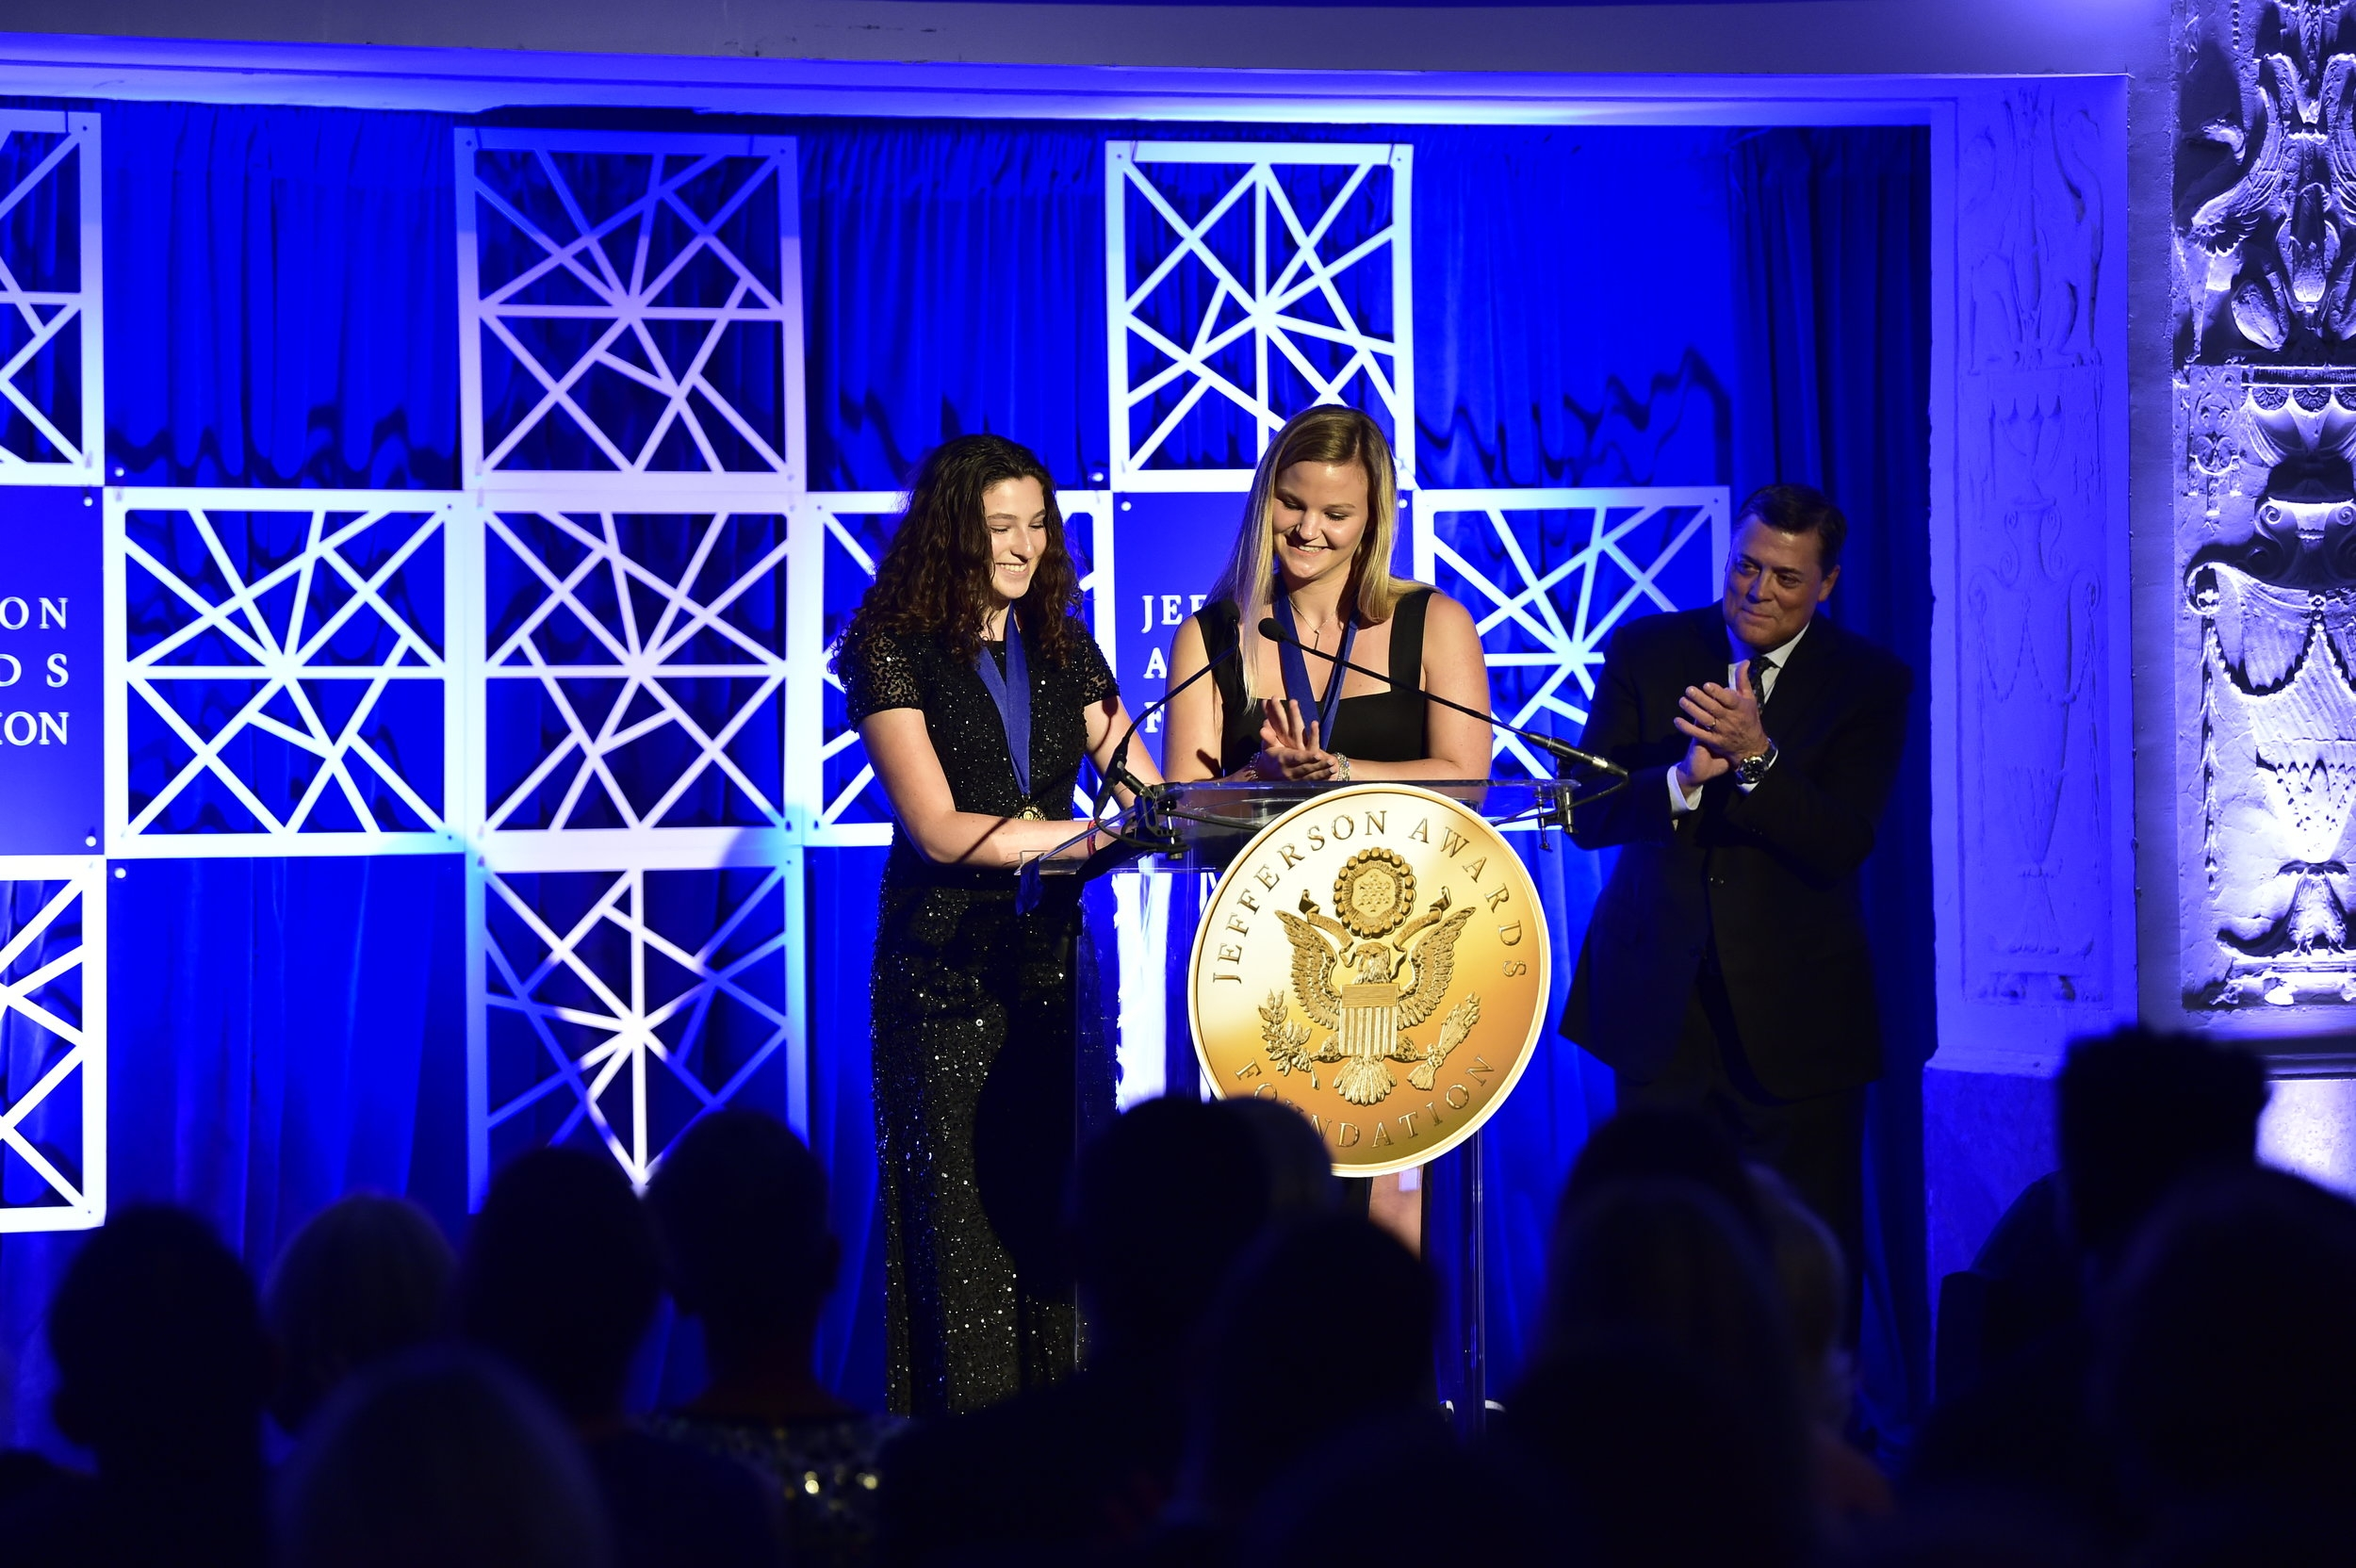 Washington, D.C. (June 5, 2018) –The  Jefferson Awards Foundation , the nation's most prestigious and longest-standing organization dedicated to inspiring and celebrating public service, announced recipients for three of its 2018 national awards. The individuals will receive their awards at the organization's 46th Annual Jefferson Awards D.C. National Ceremony at the Mayflower Hotel in Washington, D.C. on June 28, 2018.  Read more here.